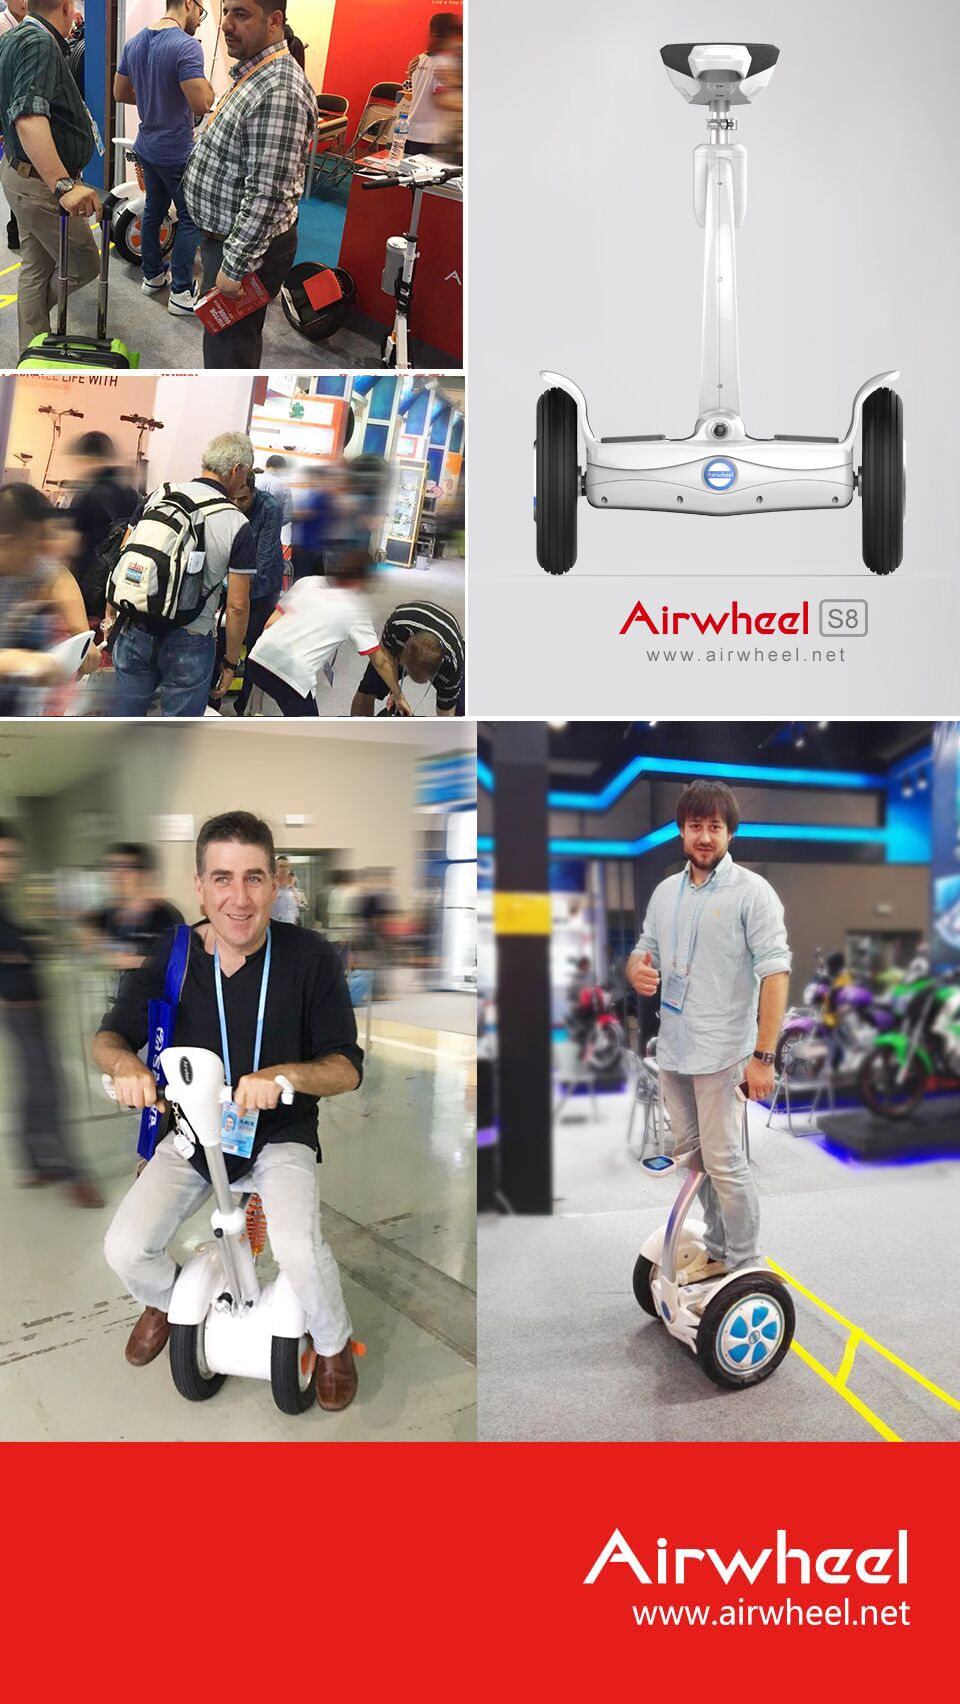 Airwheel S9 intelligent wheeled mobile robot